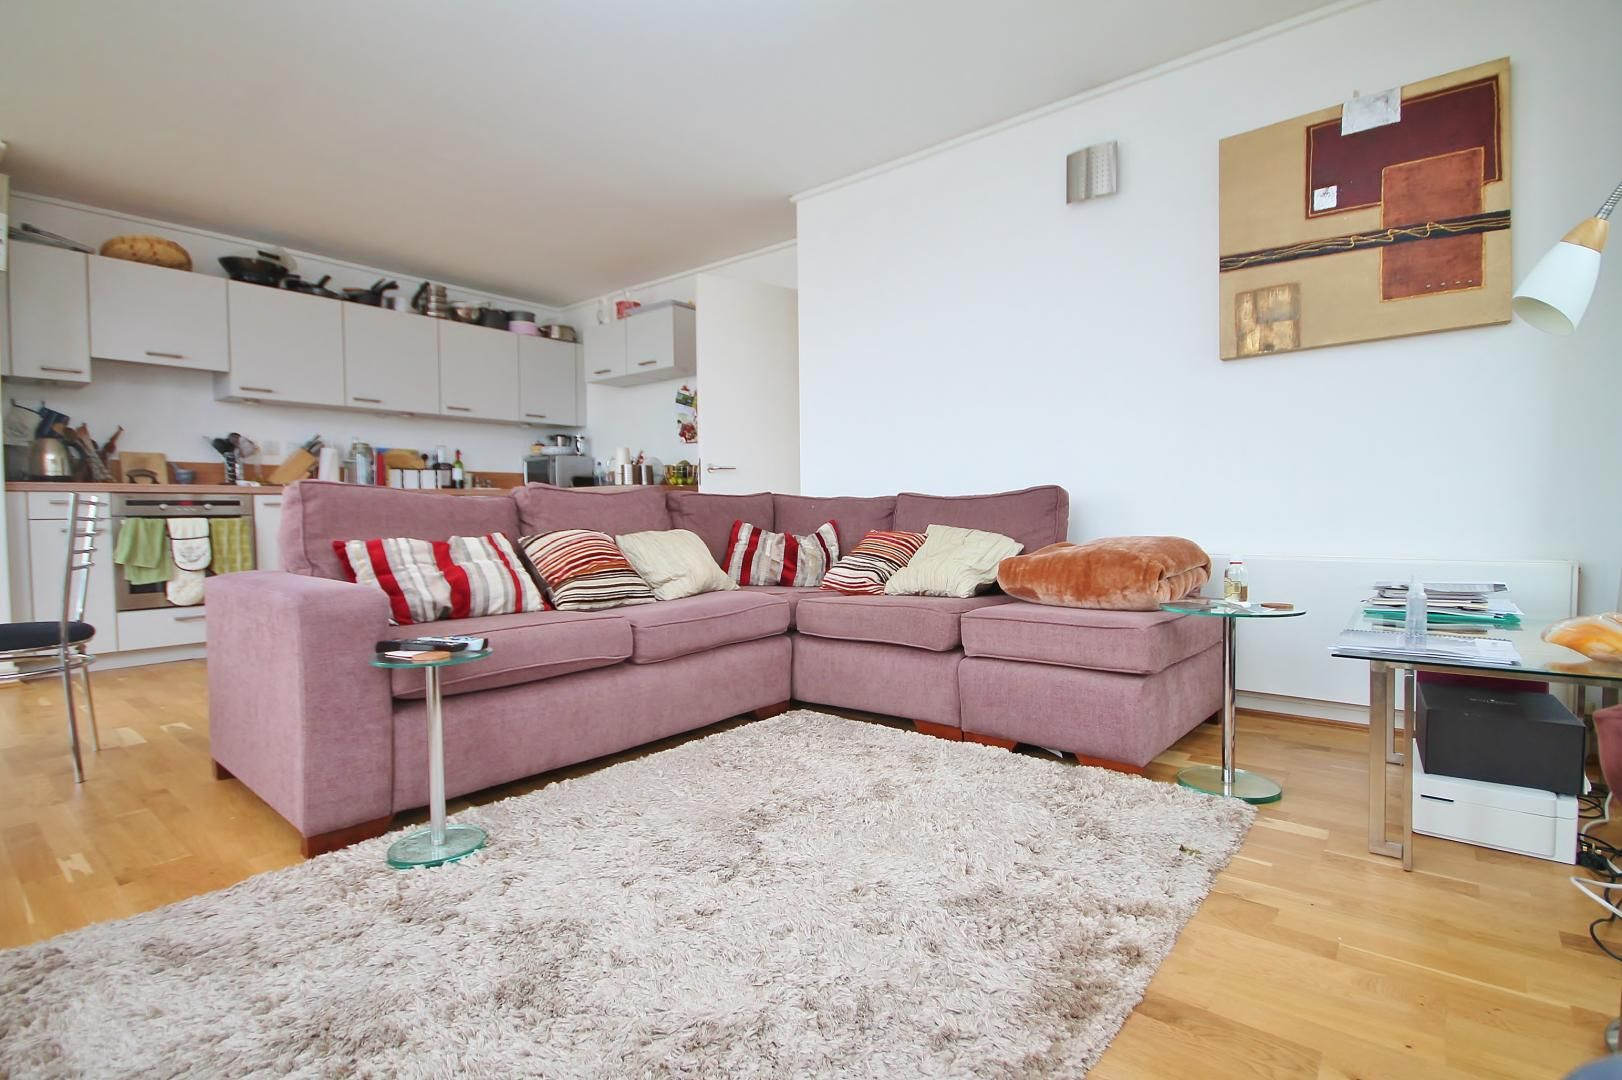 2 bed flat for sale in John Harrison Way - Property Image 1